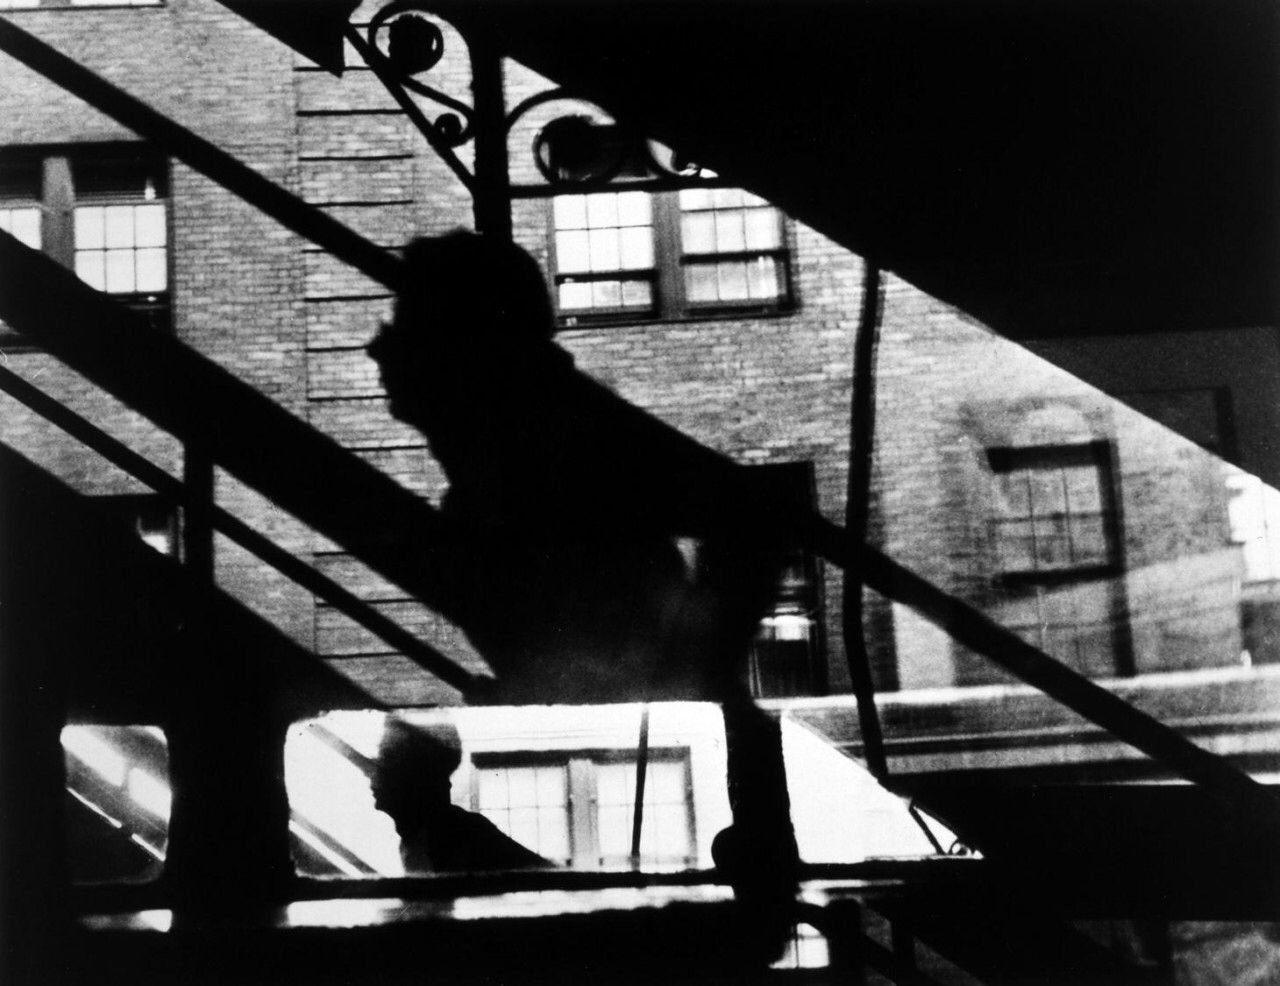 Imagen de http://www.chrysler.org/images/exhibitions/col-faurer-elevated-stairway.jpg.